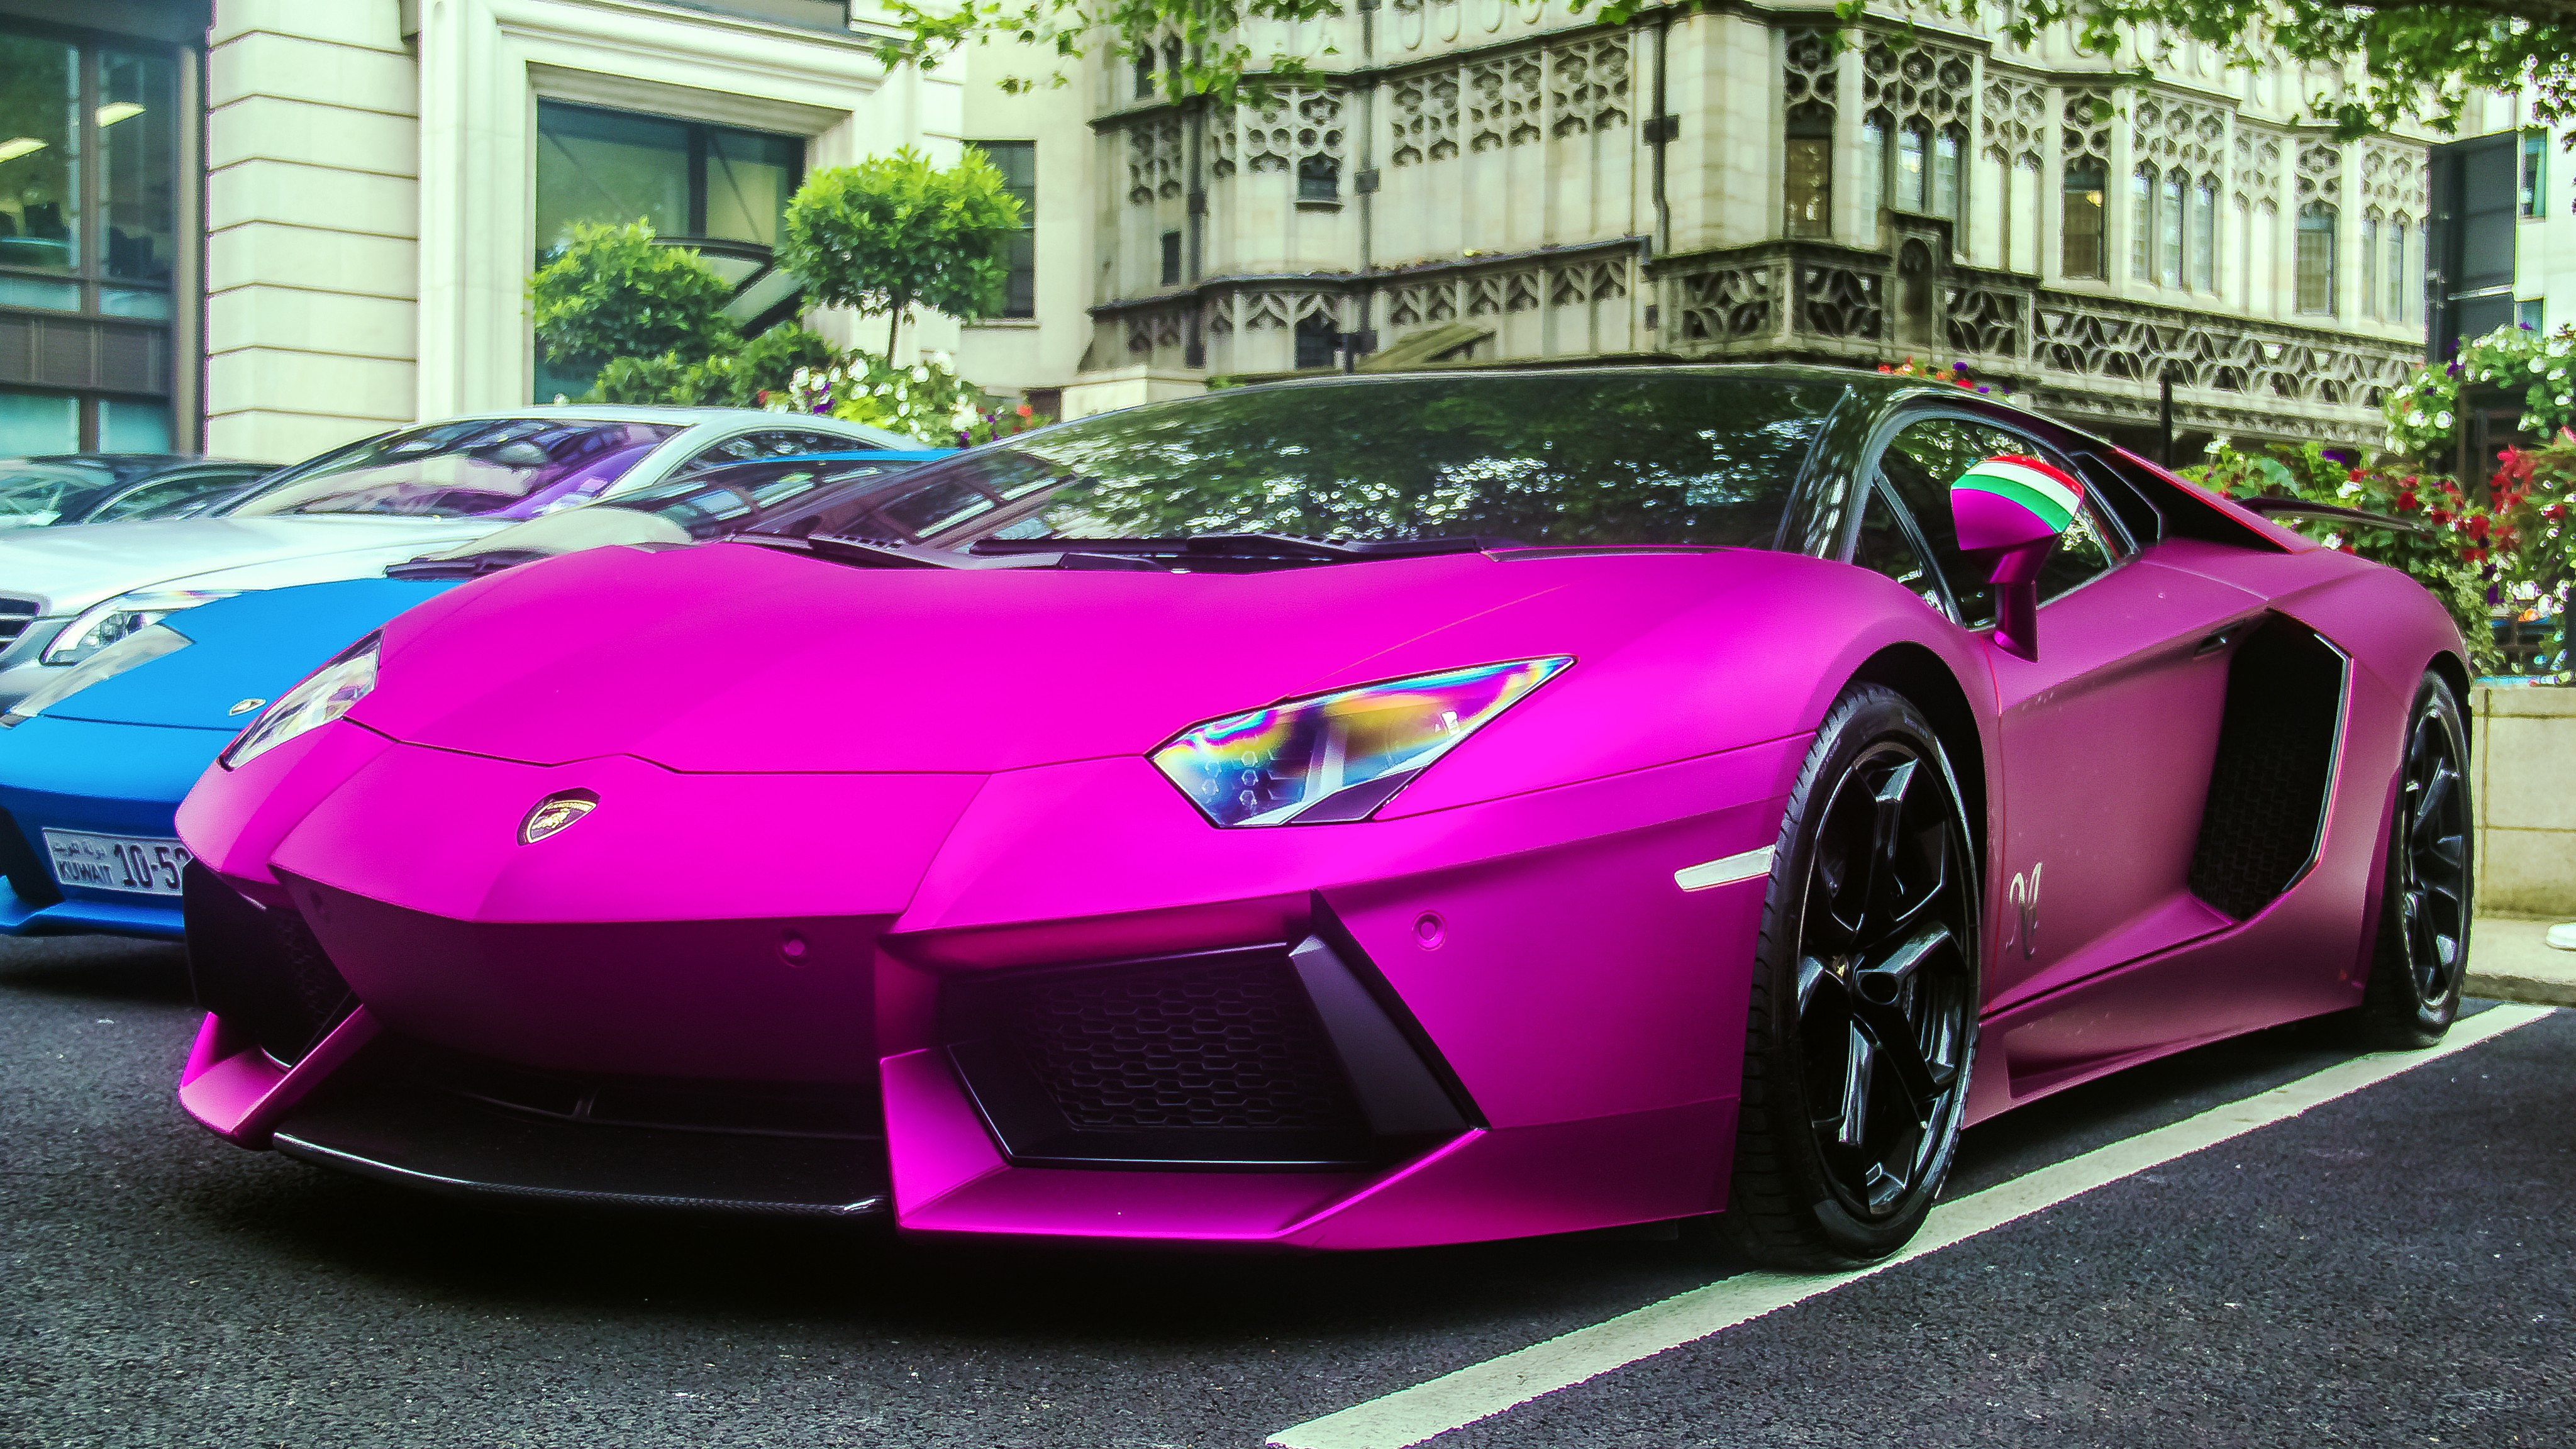 Download Lamborghini Aventador In Pink Wallpapers Hd From Na Hd